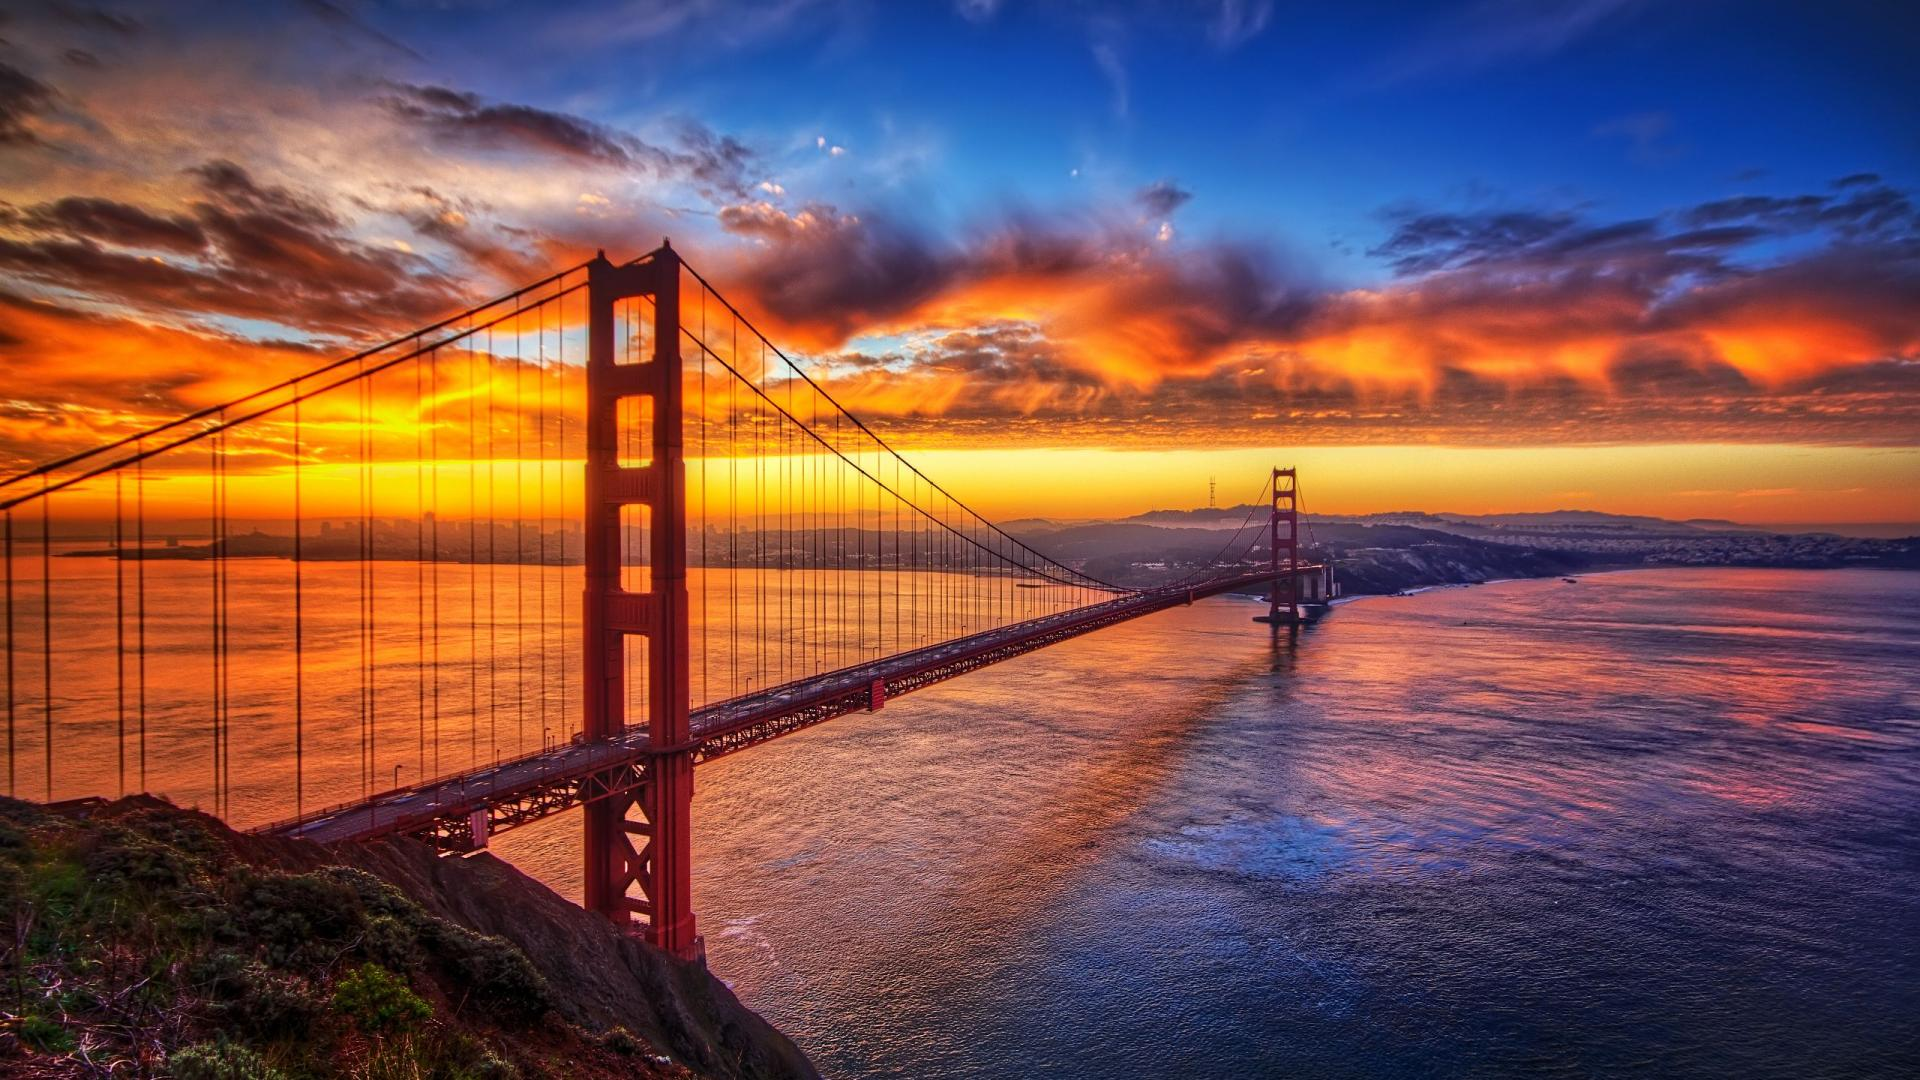 Golden Gate Bridge Sunrise Photography